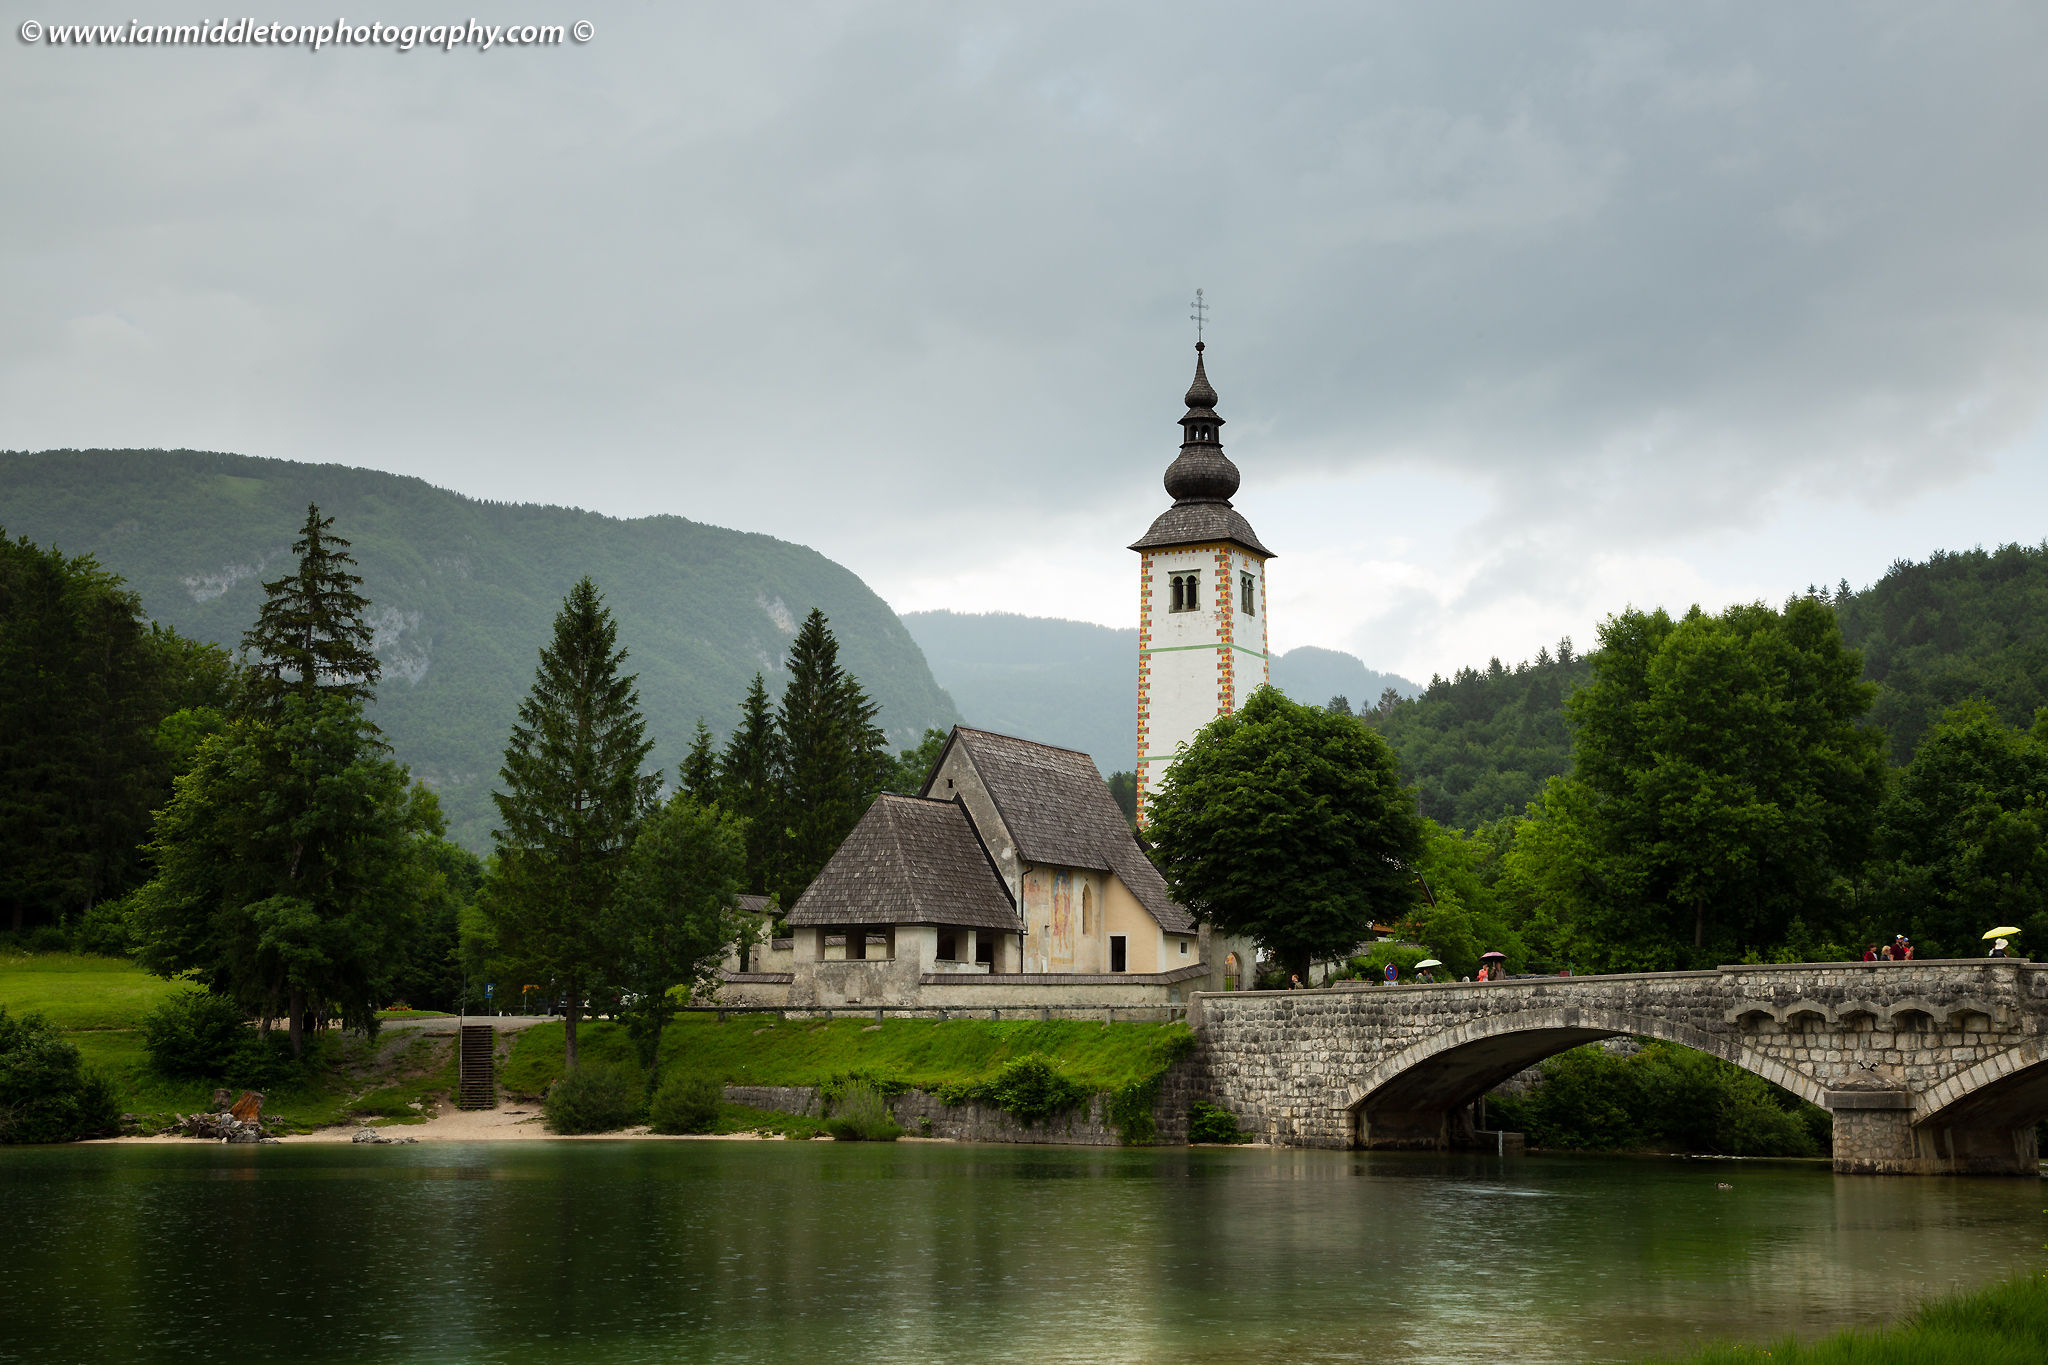 Church of Saint John and bridge between Ribcev Laz and Stara Fuzina, Triglav National Park, Slovenia